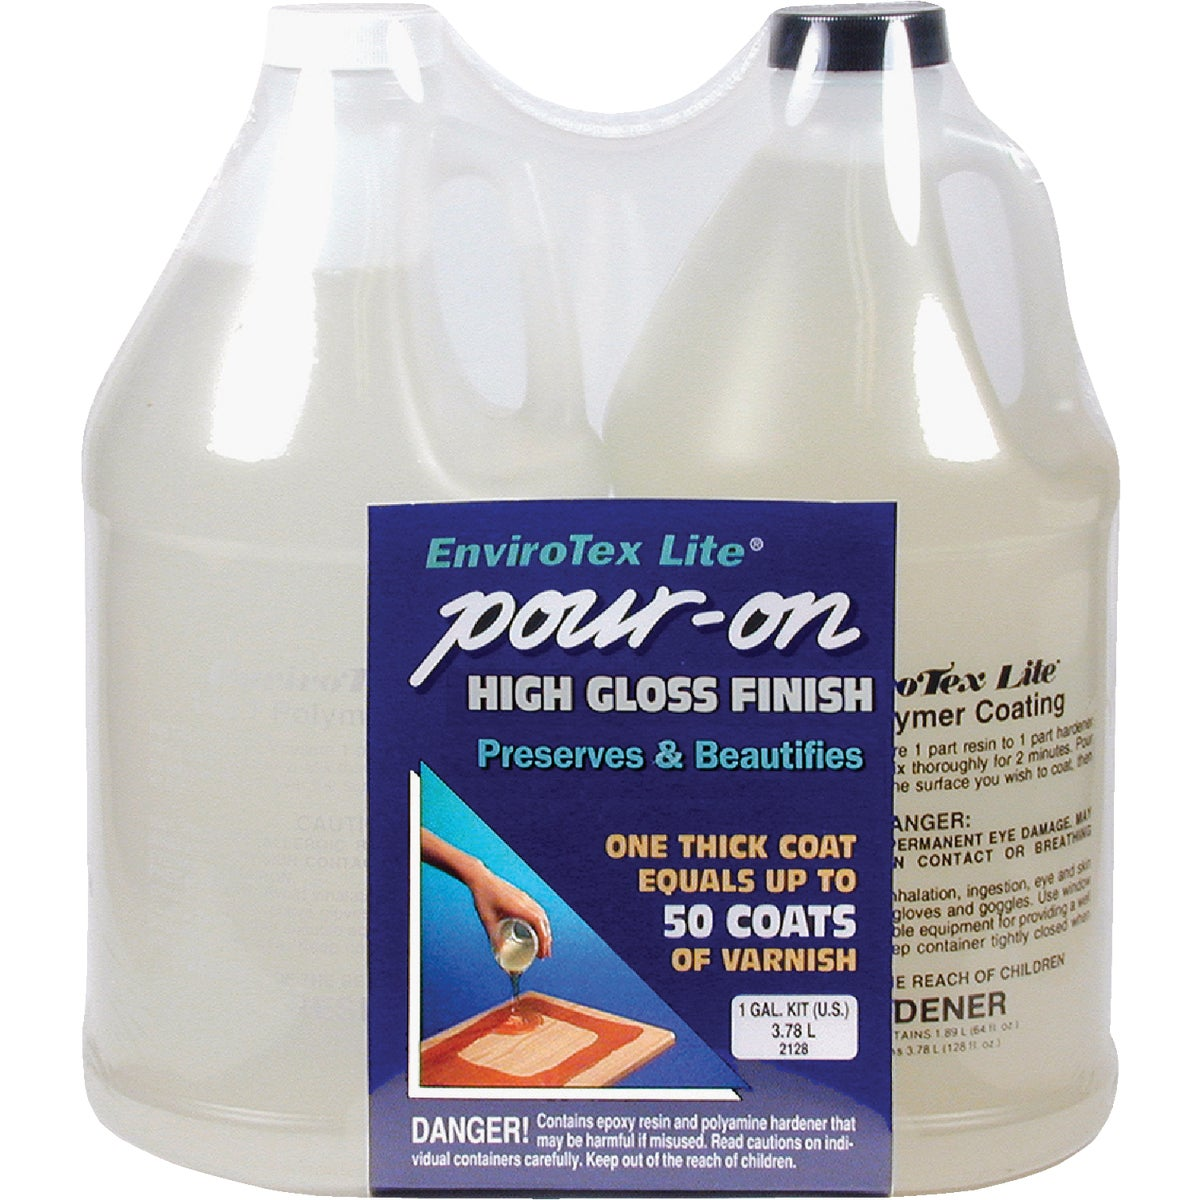 GL CLEAR POUR-ON FINISH - 2128 by Environmental Tech